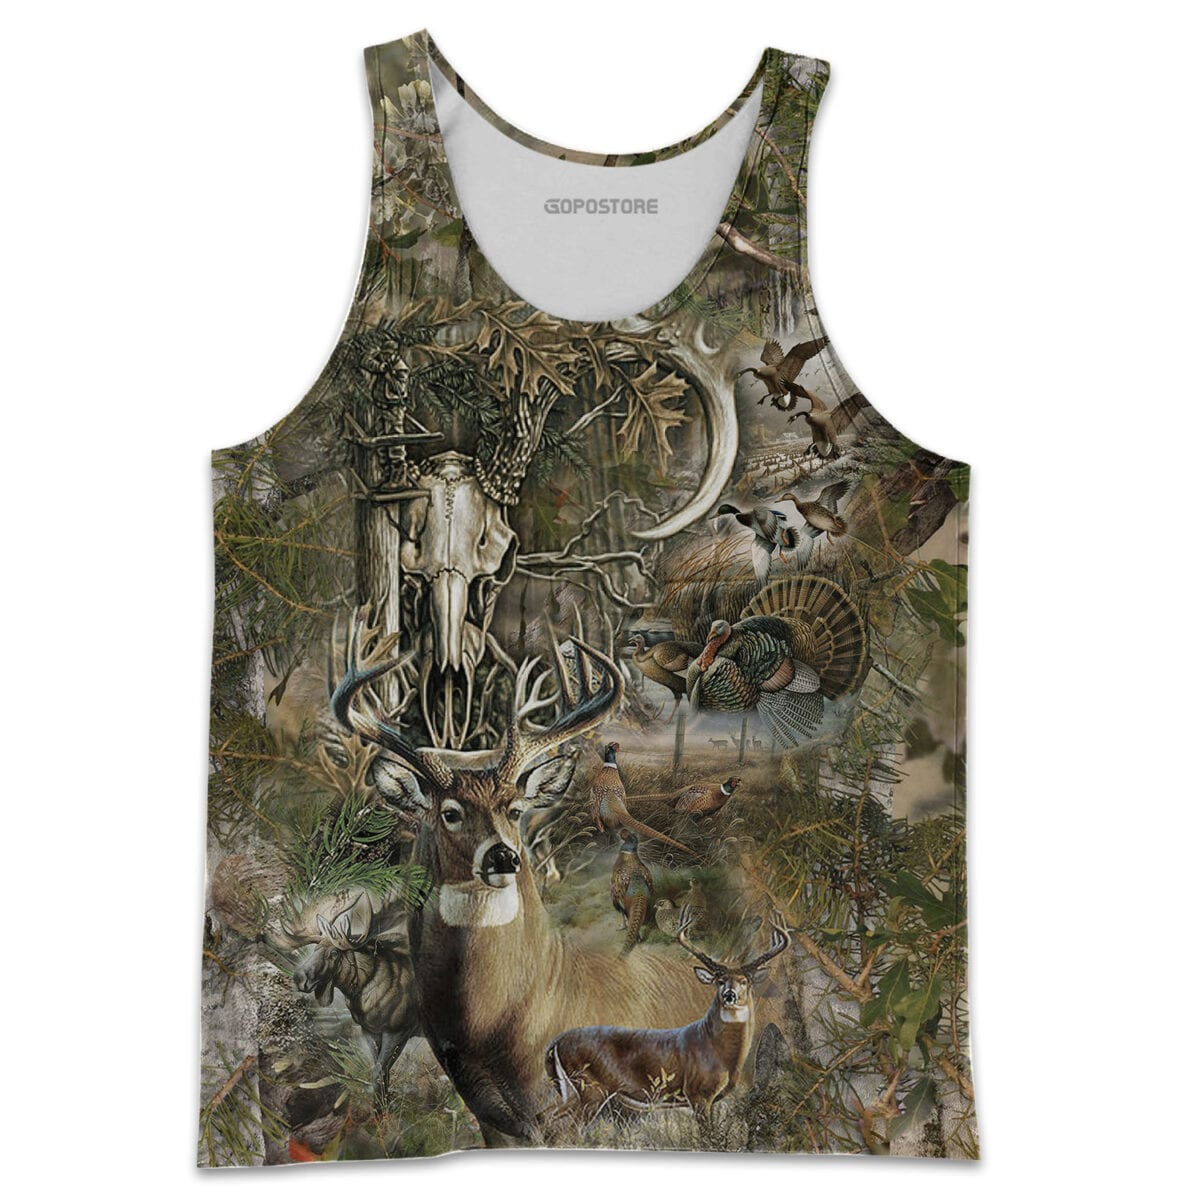 Beautiful Hunting Camo 3D All Over Printed Shirts for Men and Women 10